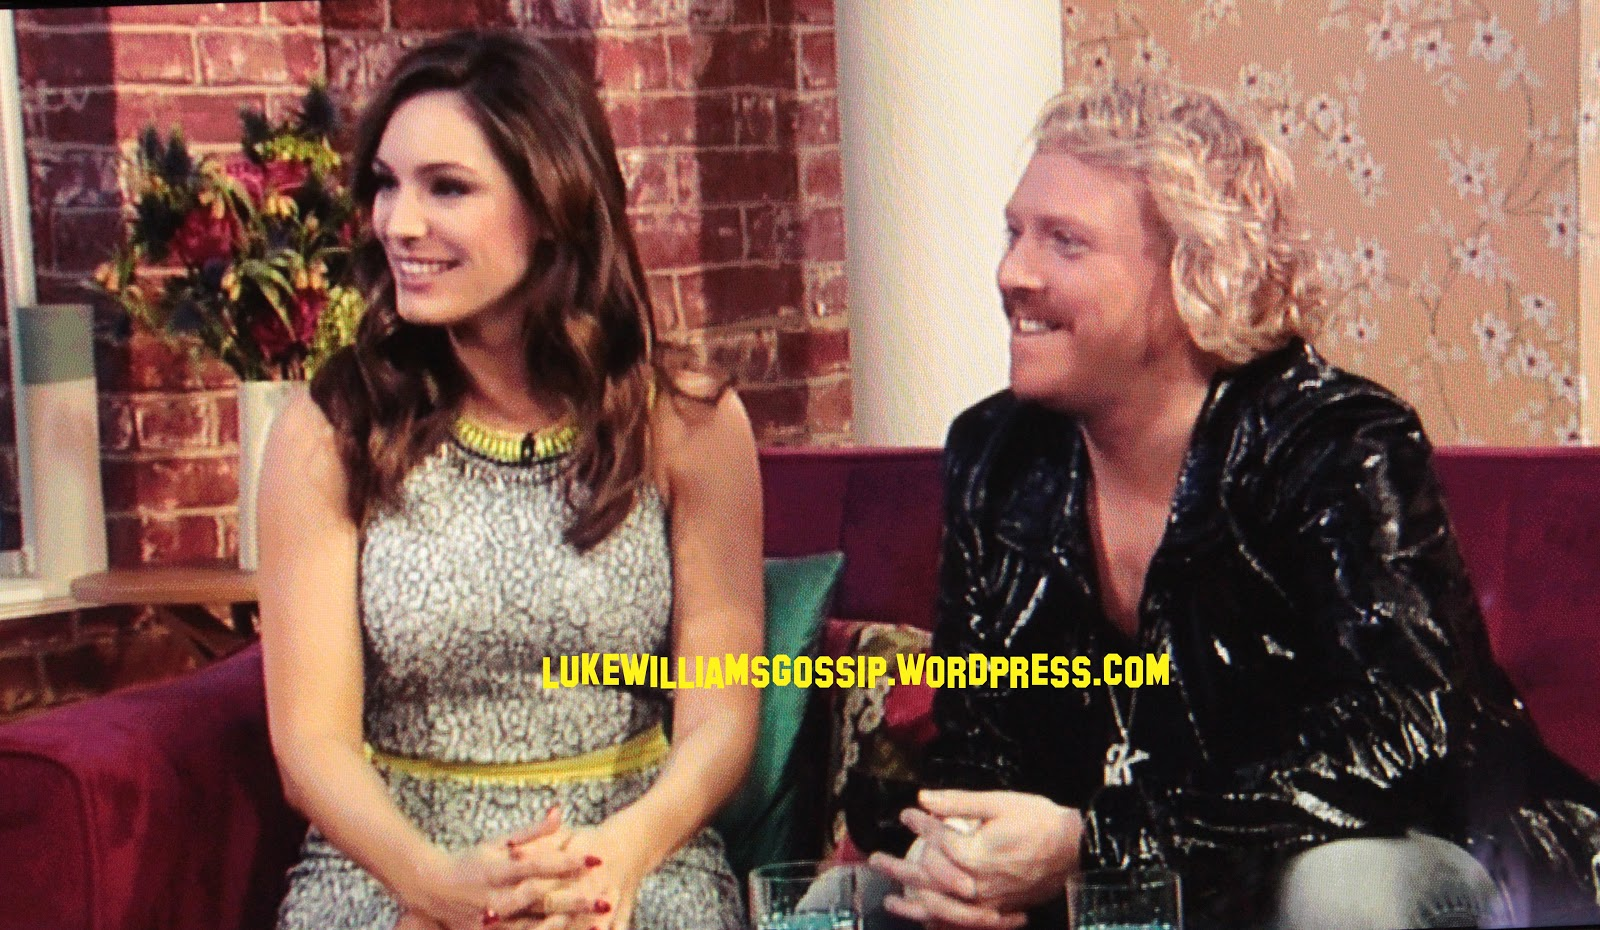 http://4.bp.blogspot.com/-SqkWSkIkUME/US-QcUT-yOI/AAAAAAAAgKs/t5-eW-ga5sw/s1600/Holly+Willoughby+Accepts+That+She+No+Longer+Has+The+Biggest+Boobs+On+Celebrity+Juice+As+Kelly+Brook+Takes+Over++As+She+Appears+On+This+Morning.JPG